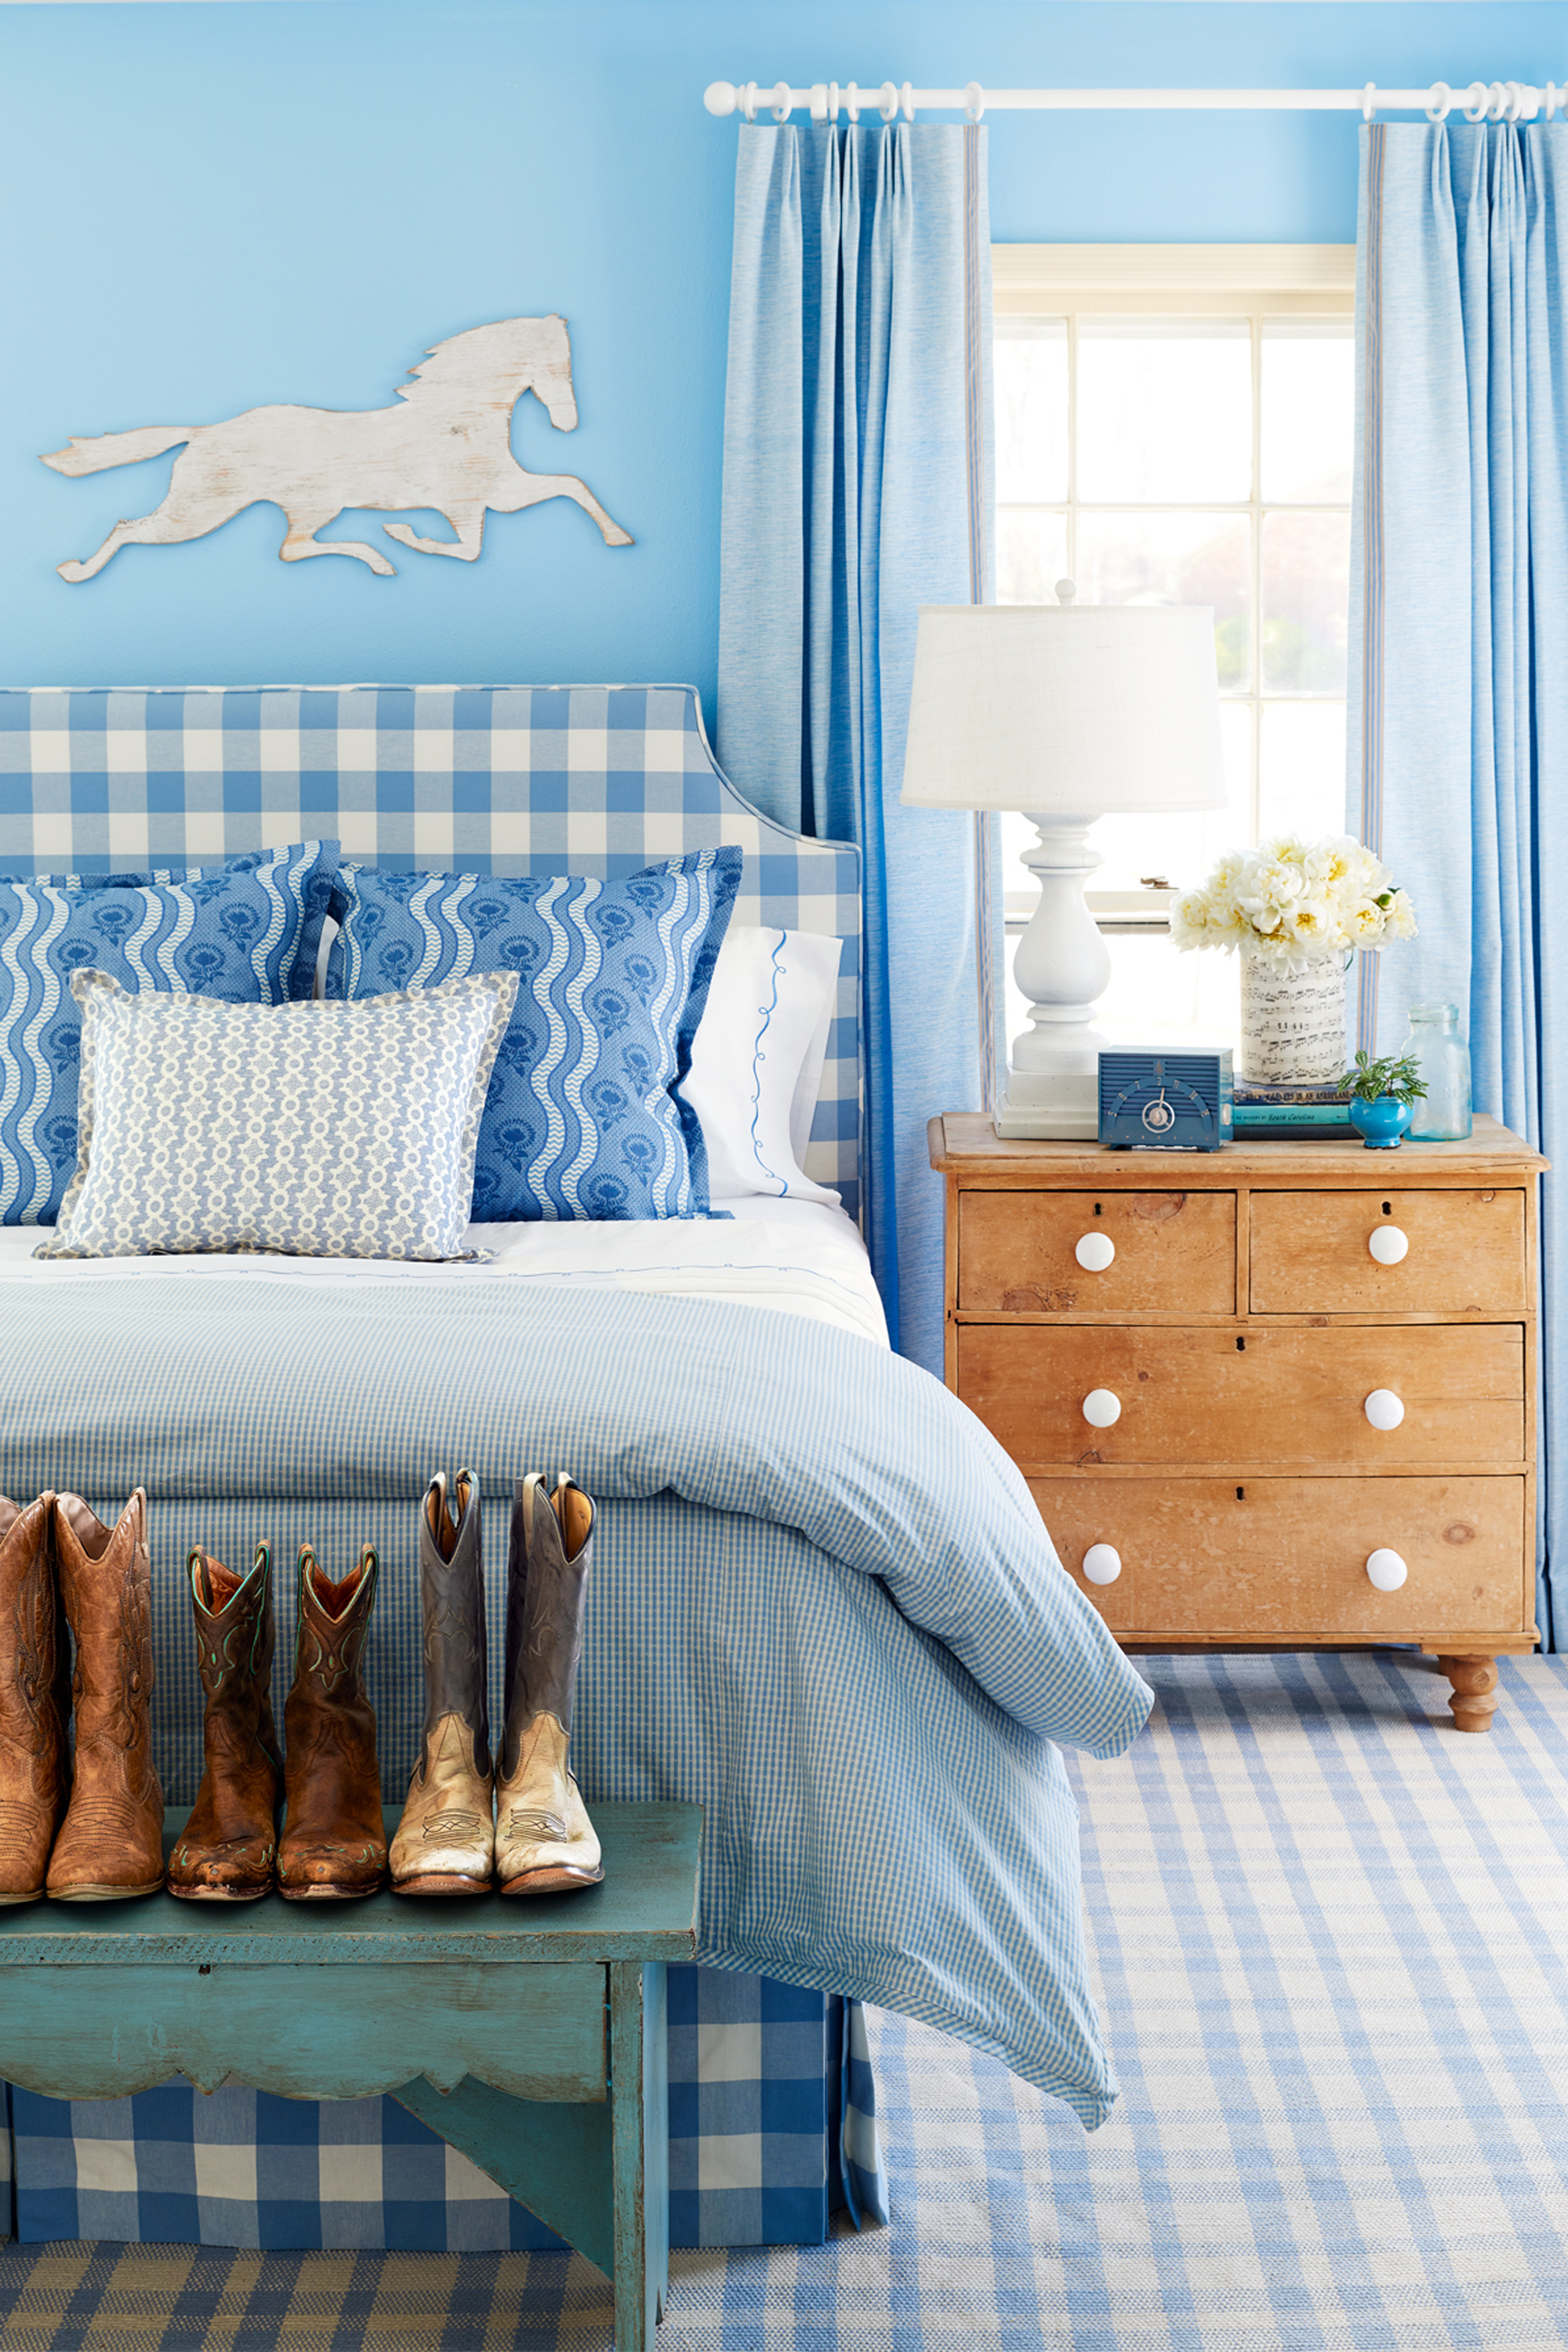 Bedroom design ideas blue - Bedroom Design Ideas Blue 0